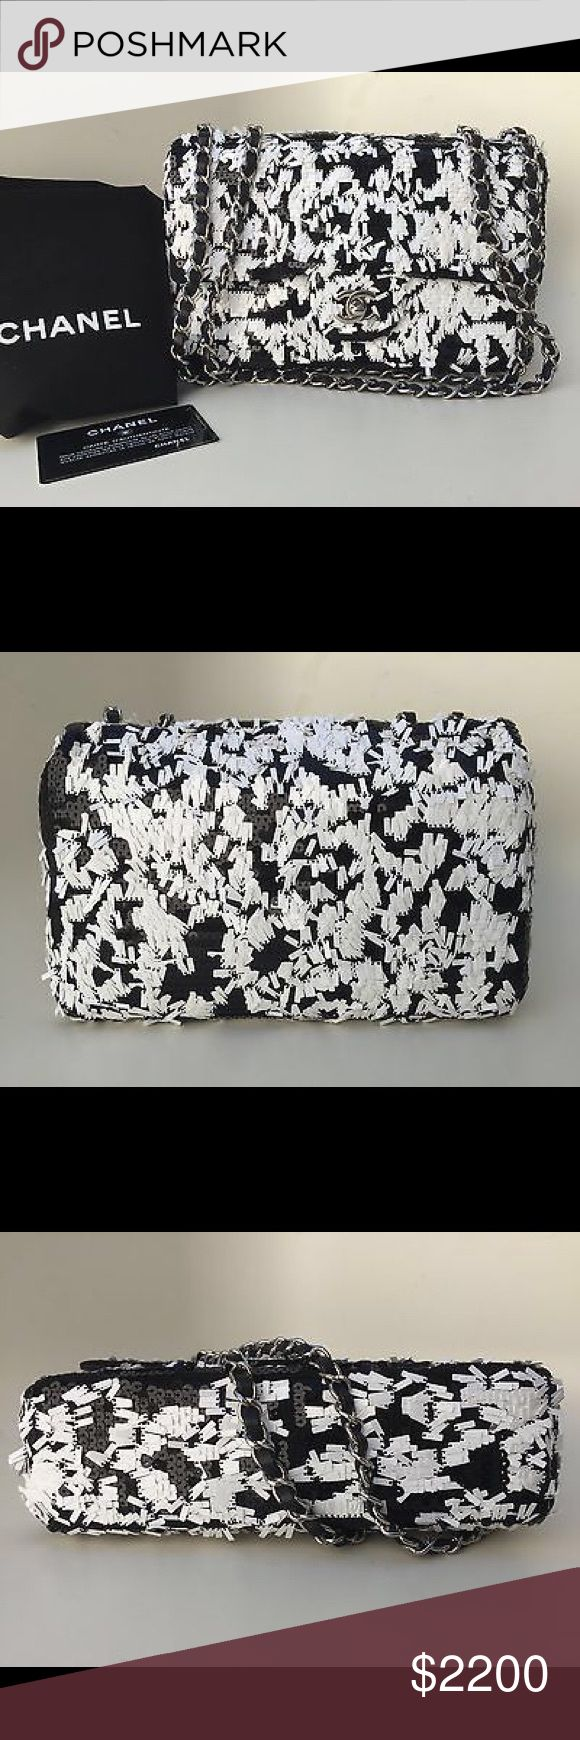 Chanel Sequin Classic Flap Bag Limited Edition Brand New 100% Authentic Chanel New Sequin Black/White Classic Flap Bag 2014 Limited Edition CHANEL Bags Shoulder Bags